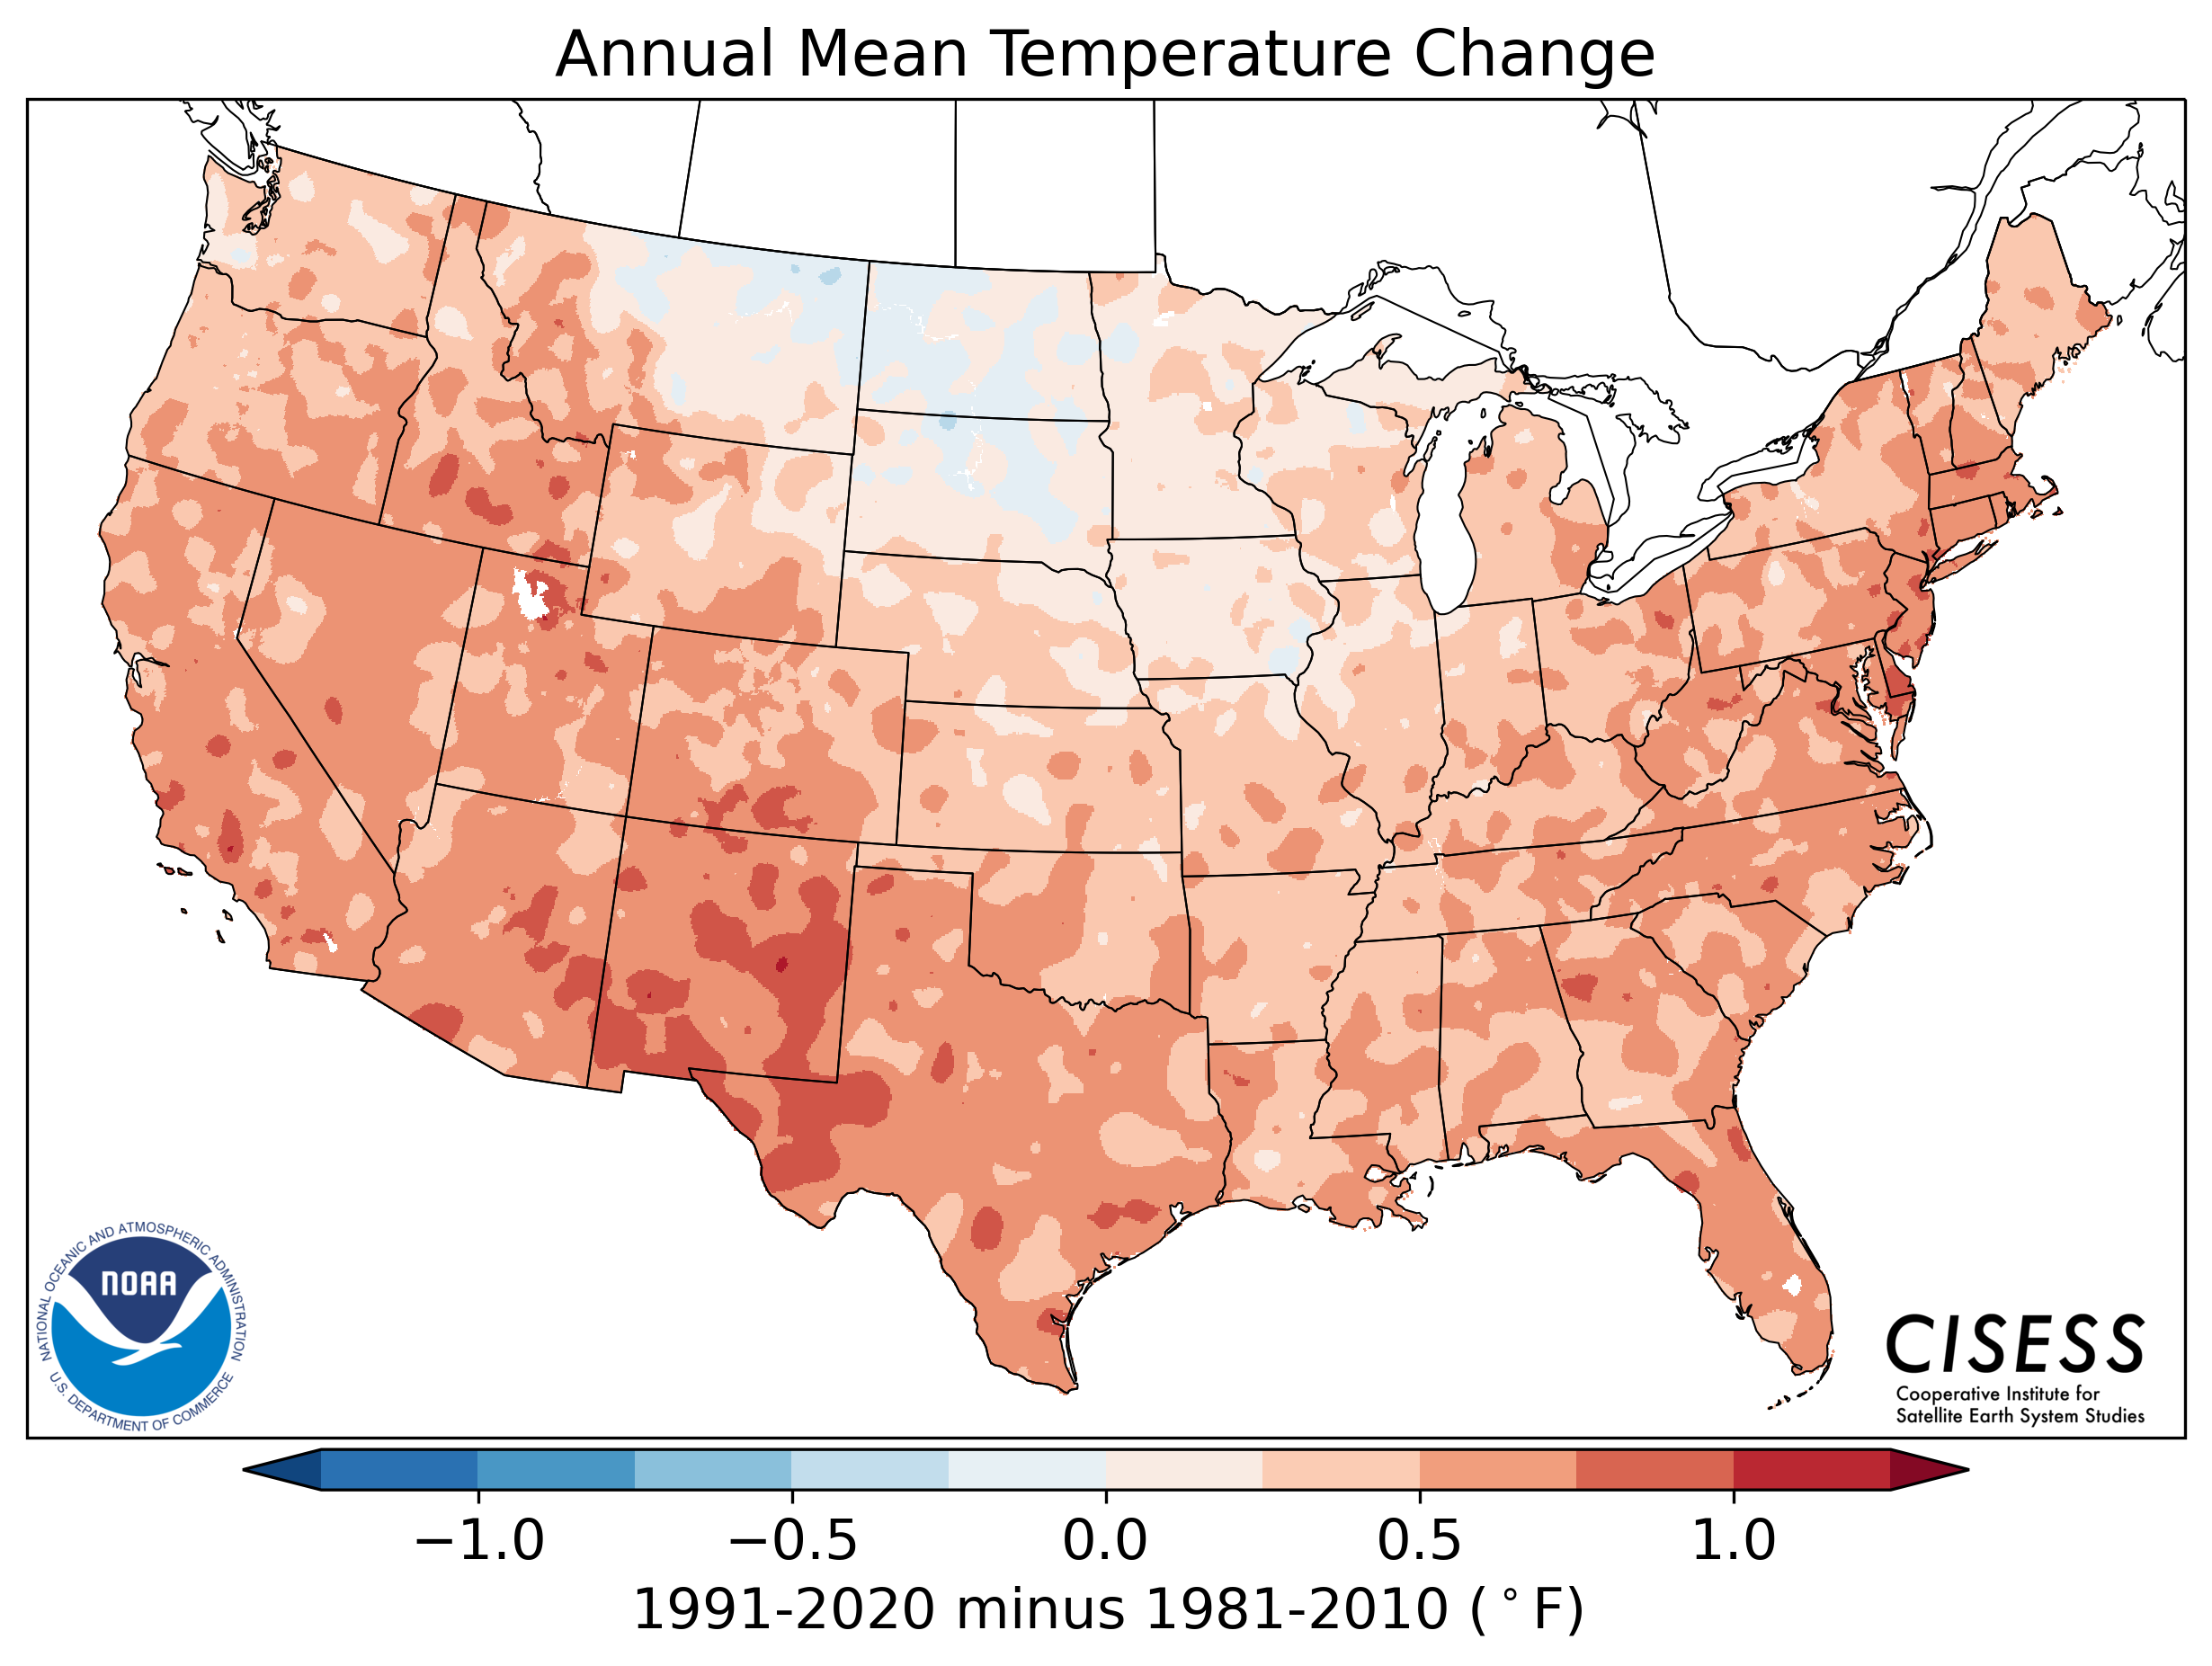 A map of the contiguous United States showing the pattern of annual average temperature change for 1991–2020 Normals minus the 1981–2010 Normals. Colors range from light blue for slightly cooler normals (-0.3 Deg F) through lighter blue and pink near zero difference to red for warmer normals (+1.0 Deg F). Almost the entire country has warmer normals, especially the West, Southwest, South Central, Southeast, and East U.S. Only the North Central U.S. (MT, ND, SD, MN, IA) has nearly zero temperature difference to at most a cooling of 0.3 Deg F.